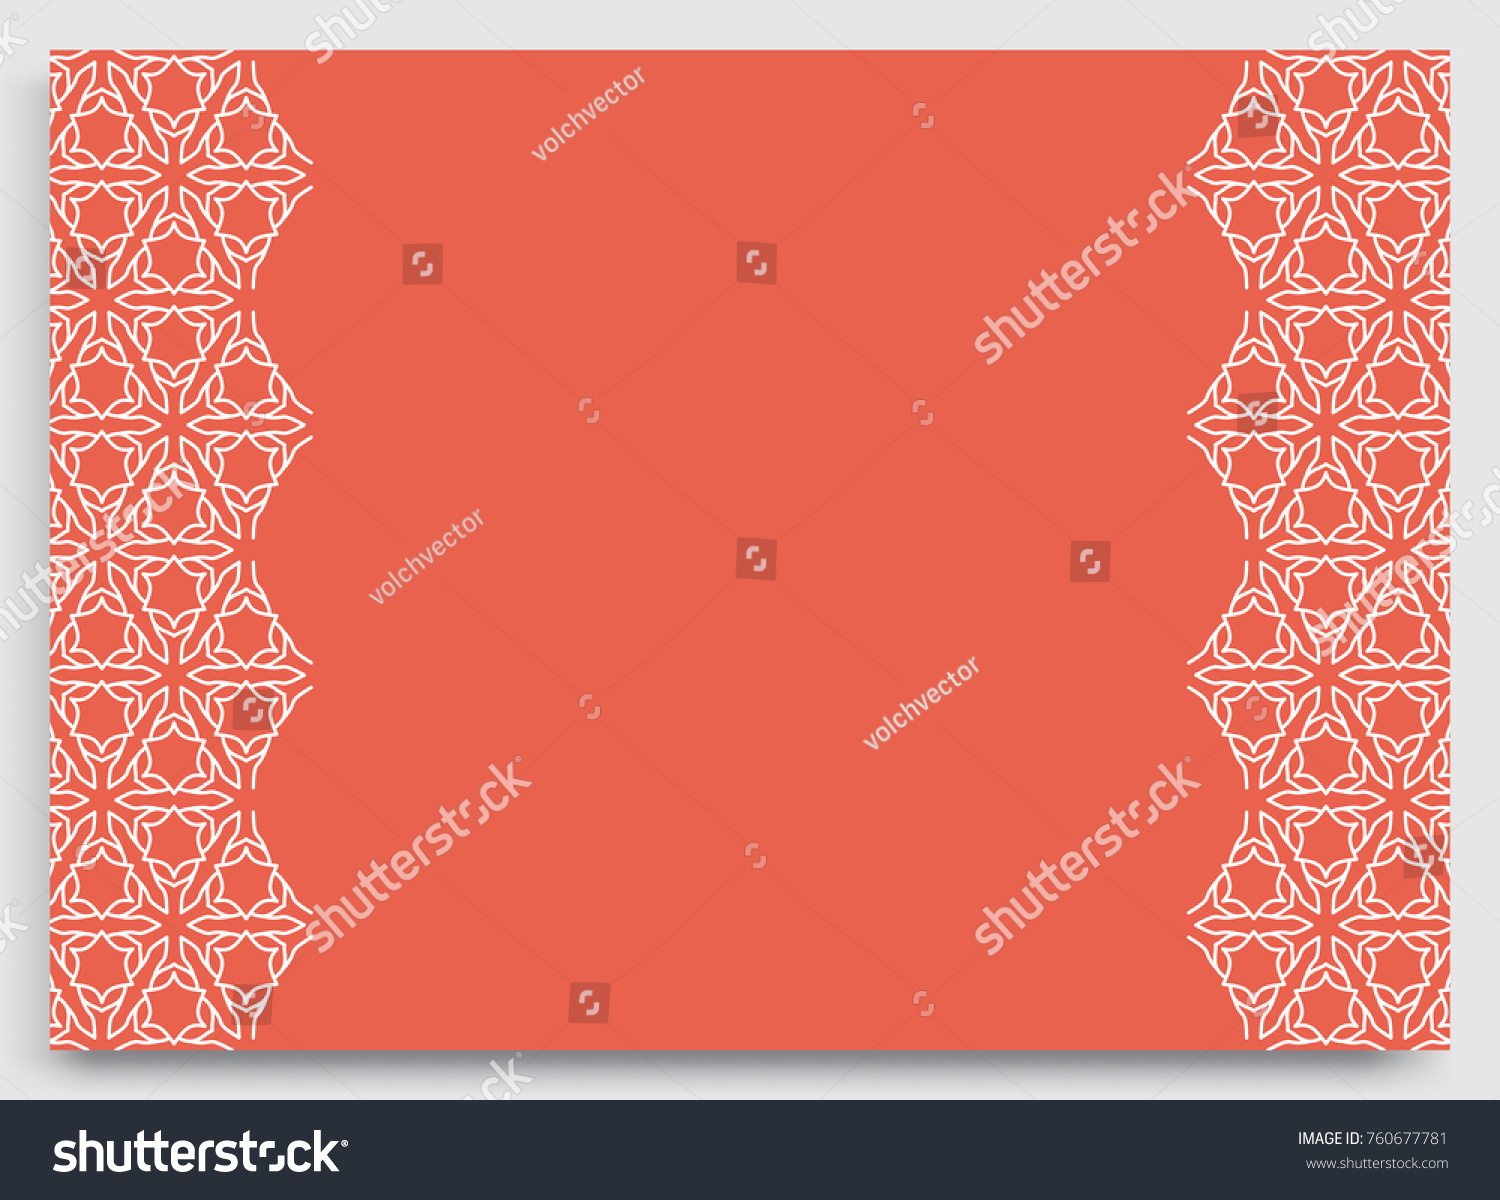 Greeting Card Wedding Invitation Template Lace Stock Vector ...